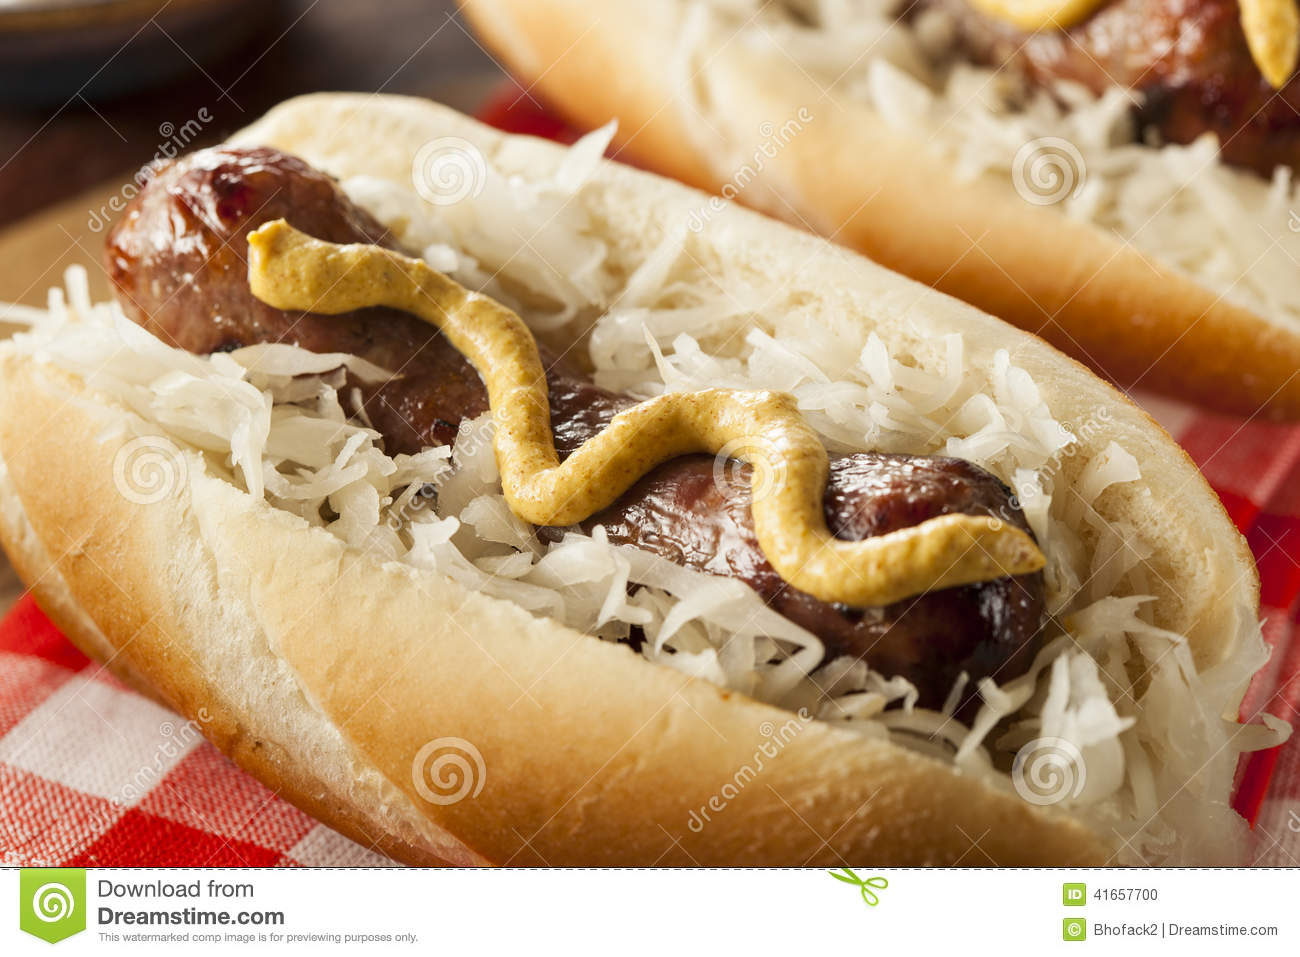 Homemade Bratwurst With Sauerkraut Stock Photo - Image: 41657700